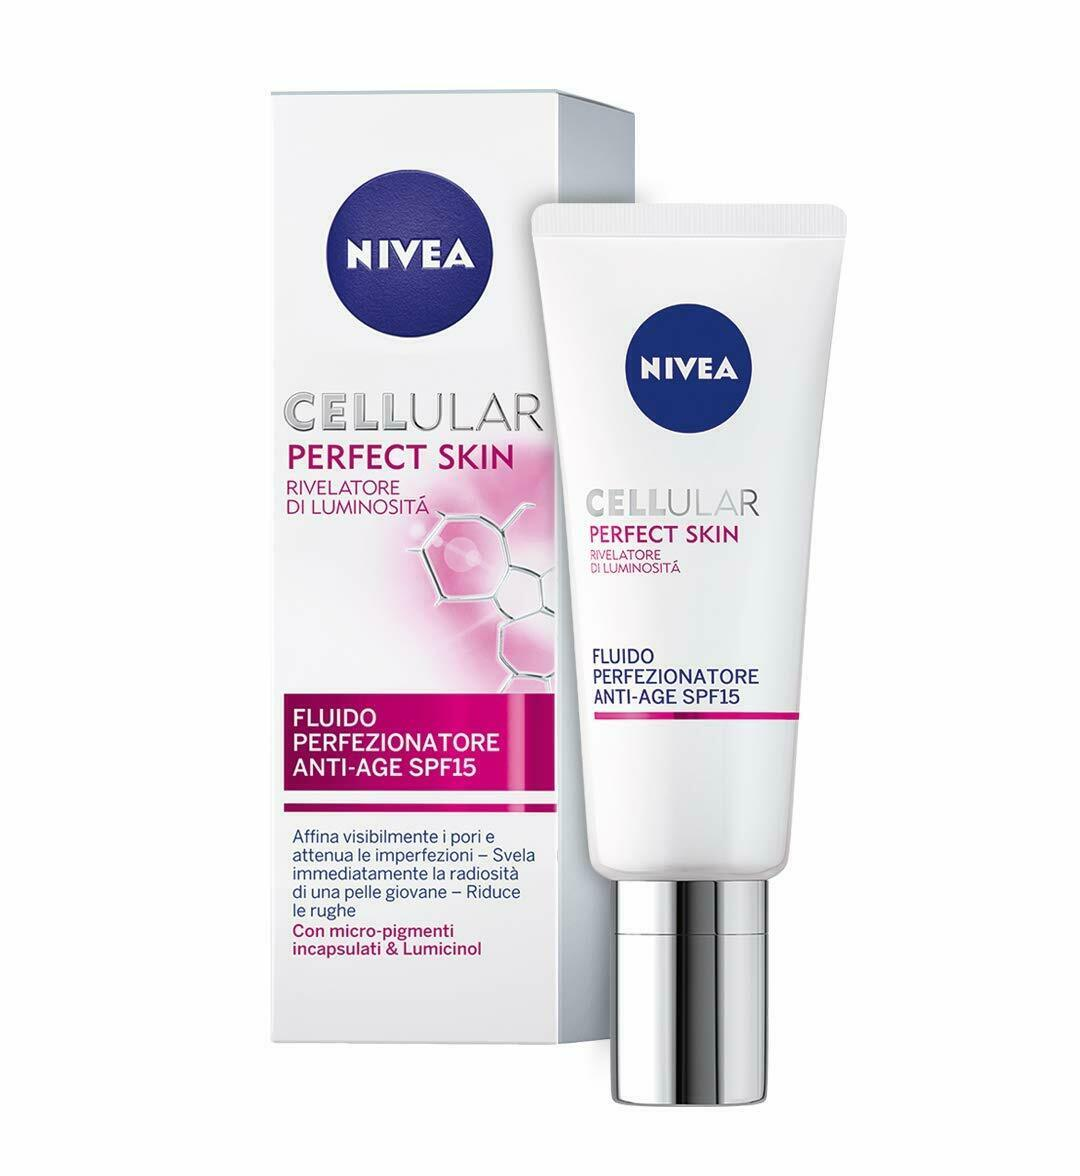 NIVEA CELLULAR PERFECT SKIN FLUIDO PERFEZIONATORE ANTI-AGE SPF 15 40ml